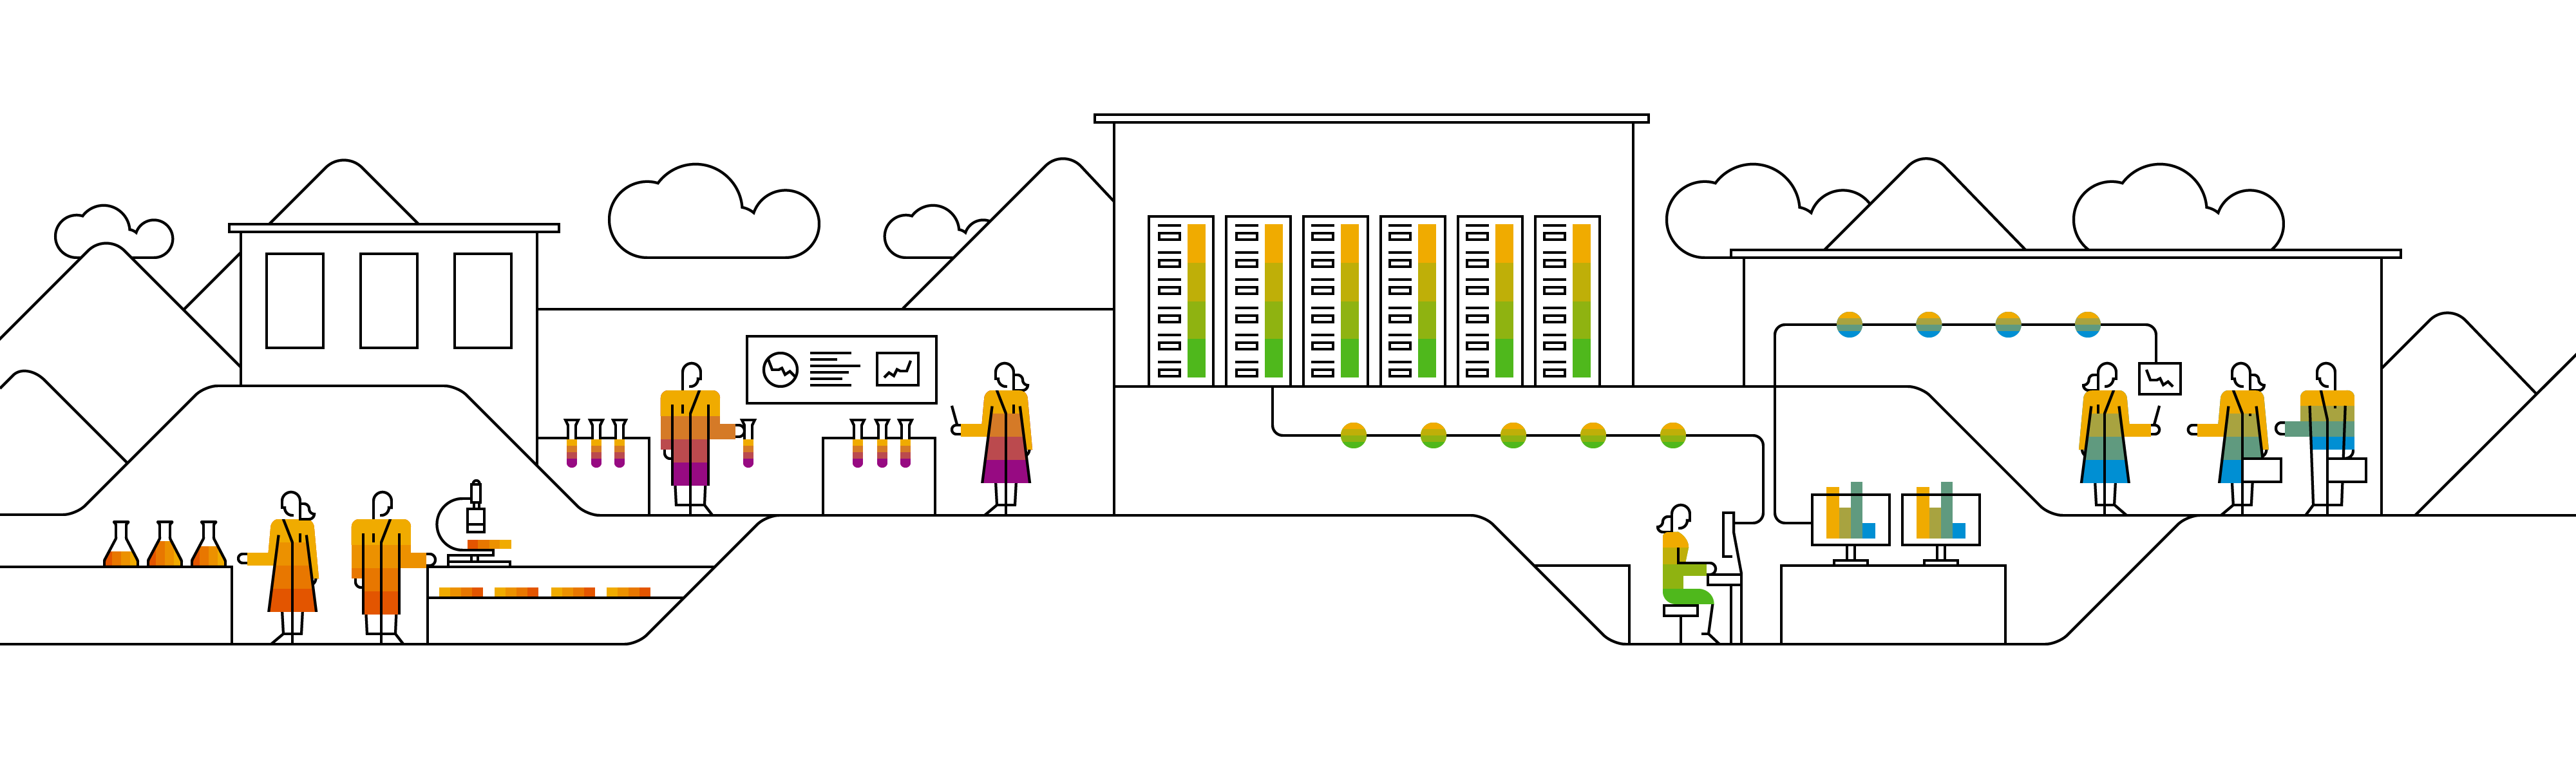 Pictograms and line art of a development lab